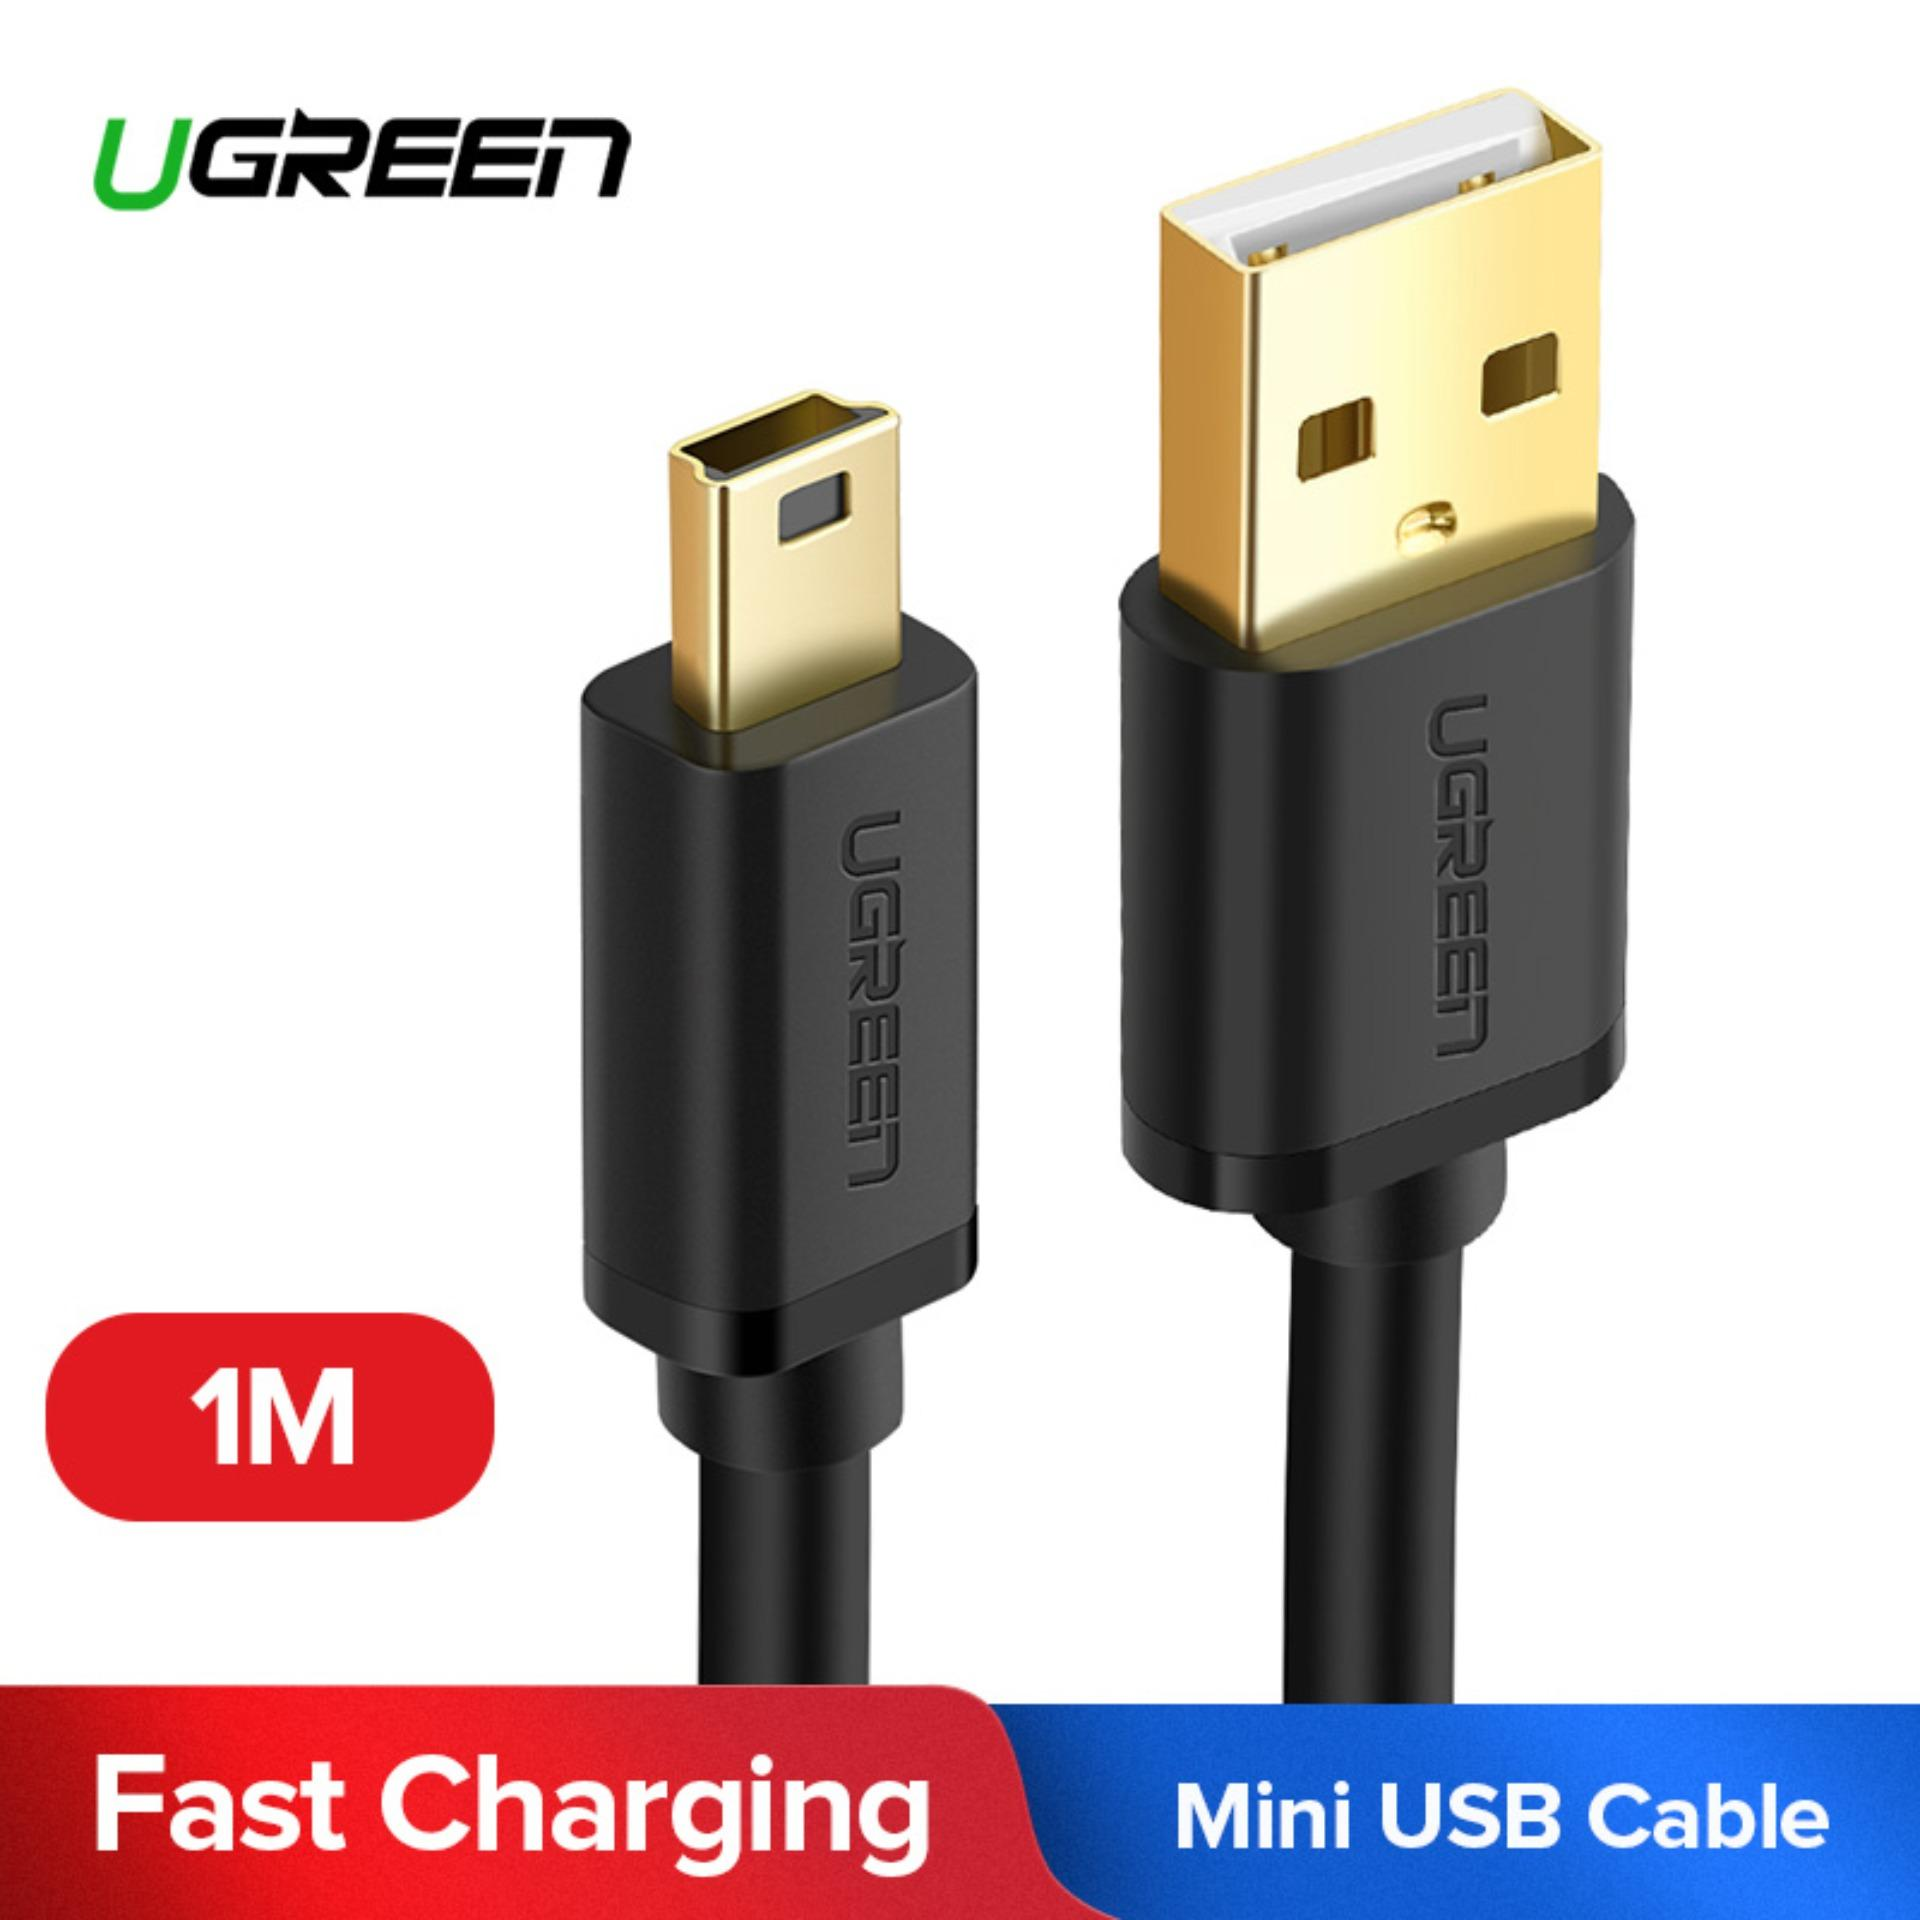 UGREEN USB 2.0 A Male to 5-Pin Mini B Fast Data Charger Cable for MP3 MP4 Players Tablets GPS Digital Camera HDD (1m) - Intl